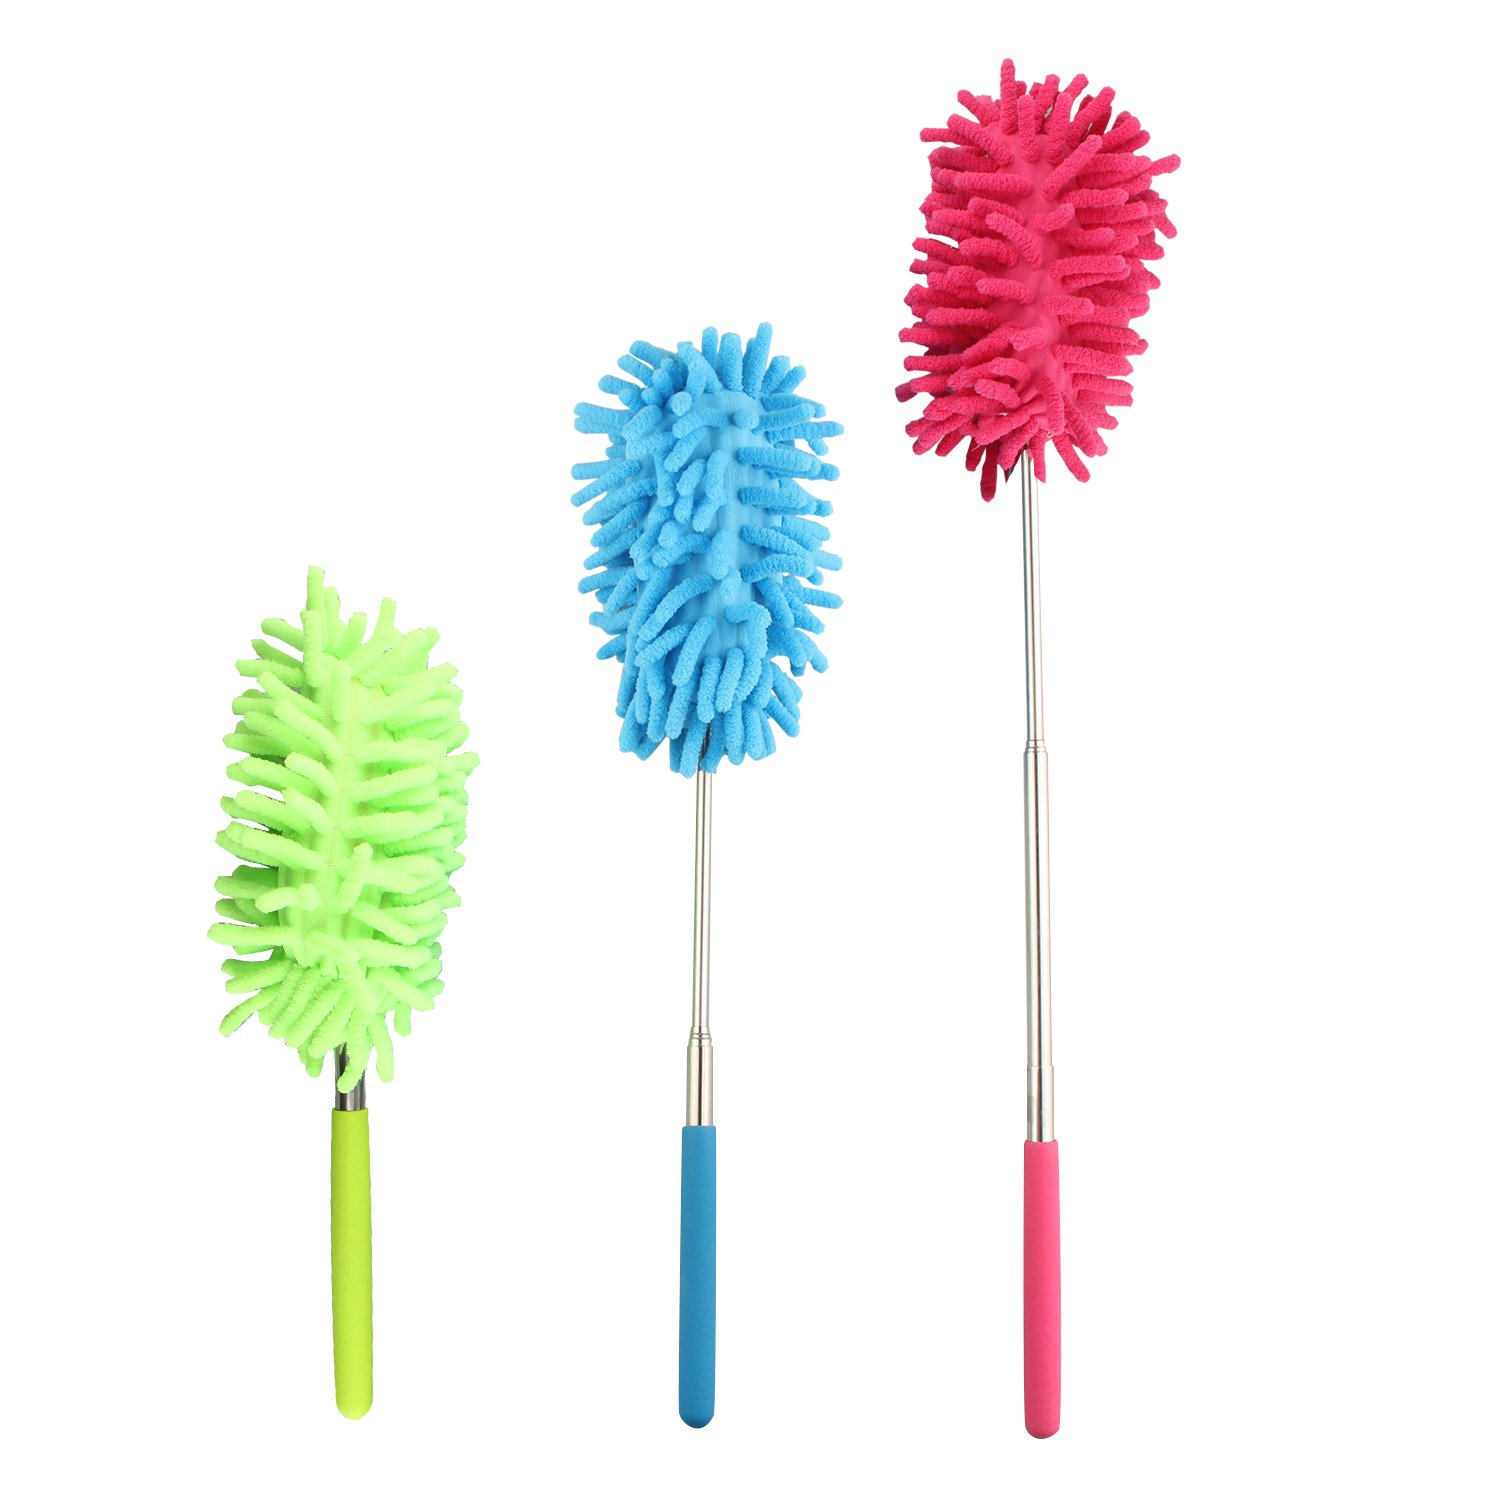 3PCS Microfibre Cleaning Duster Feather Style Extending Brush with Extendable Pole, Washable Duster Head 3 Color Choice for Home, Office, Car FUSD